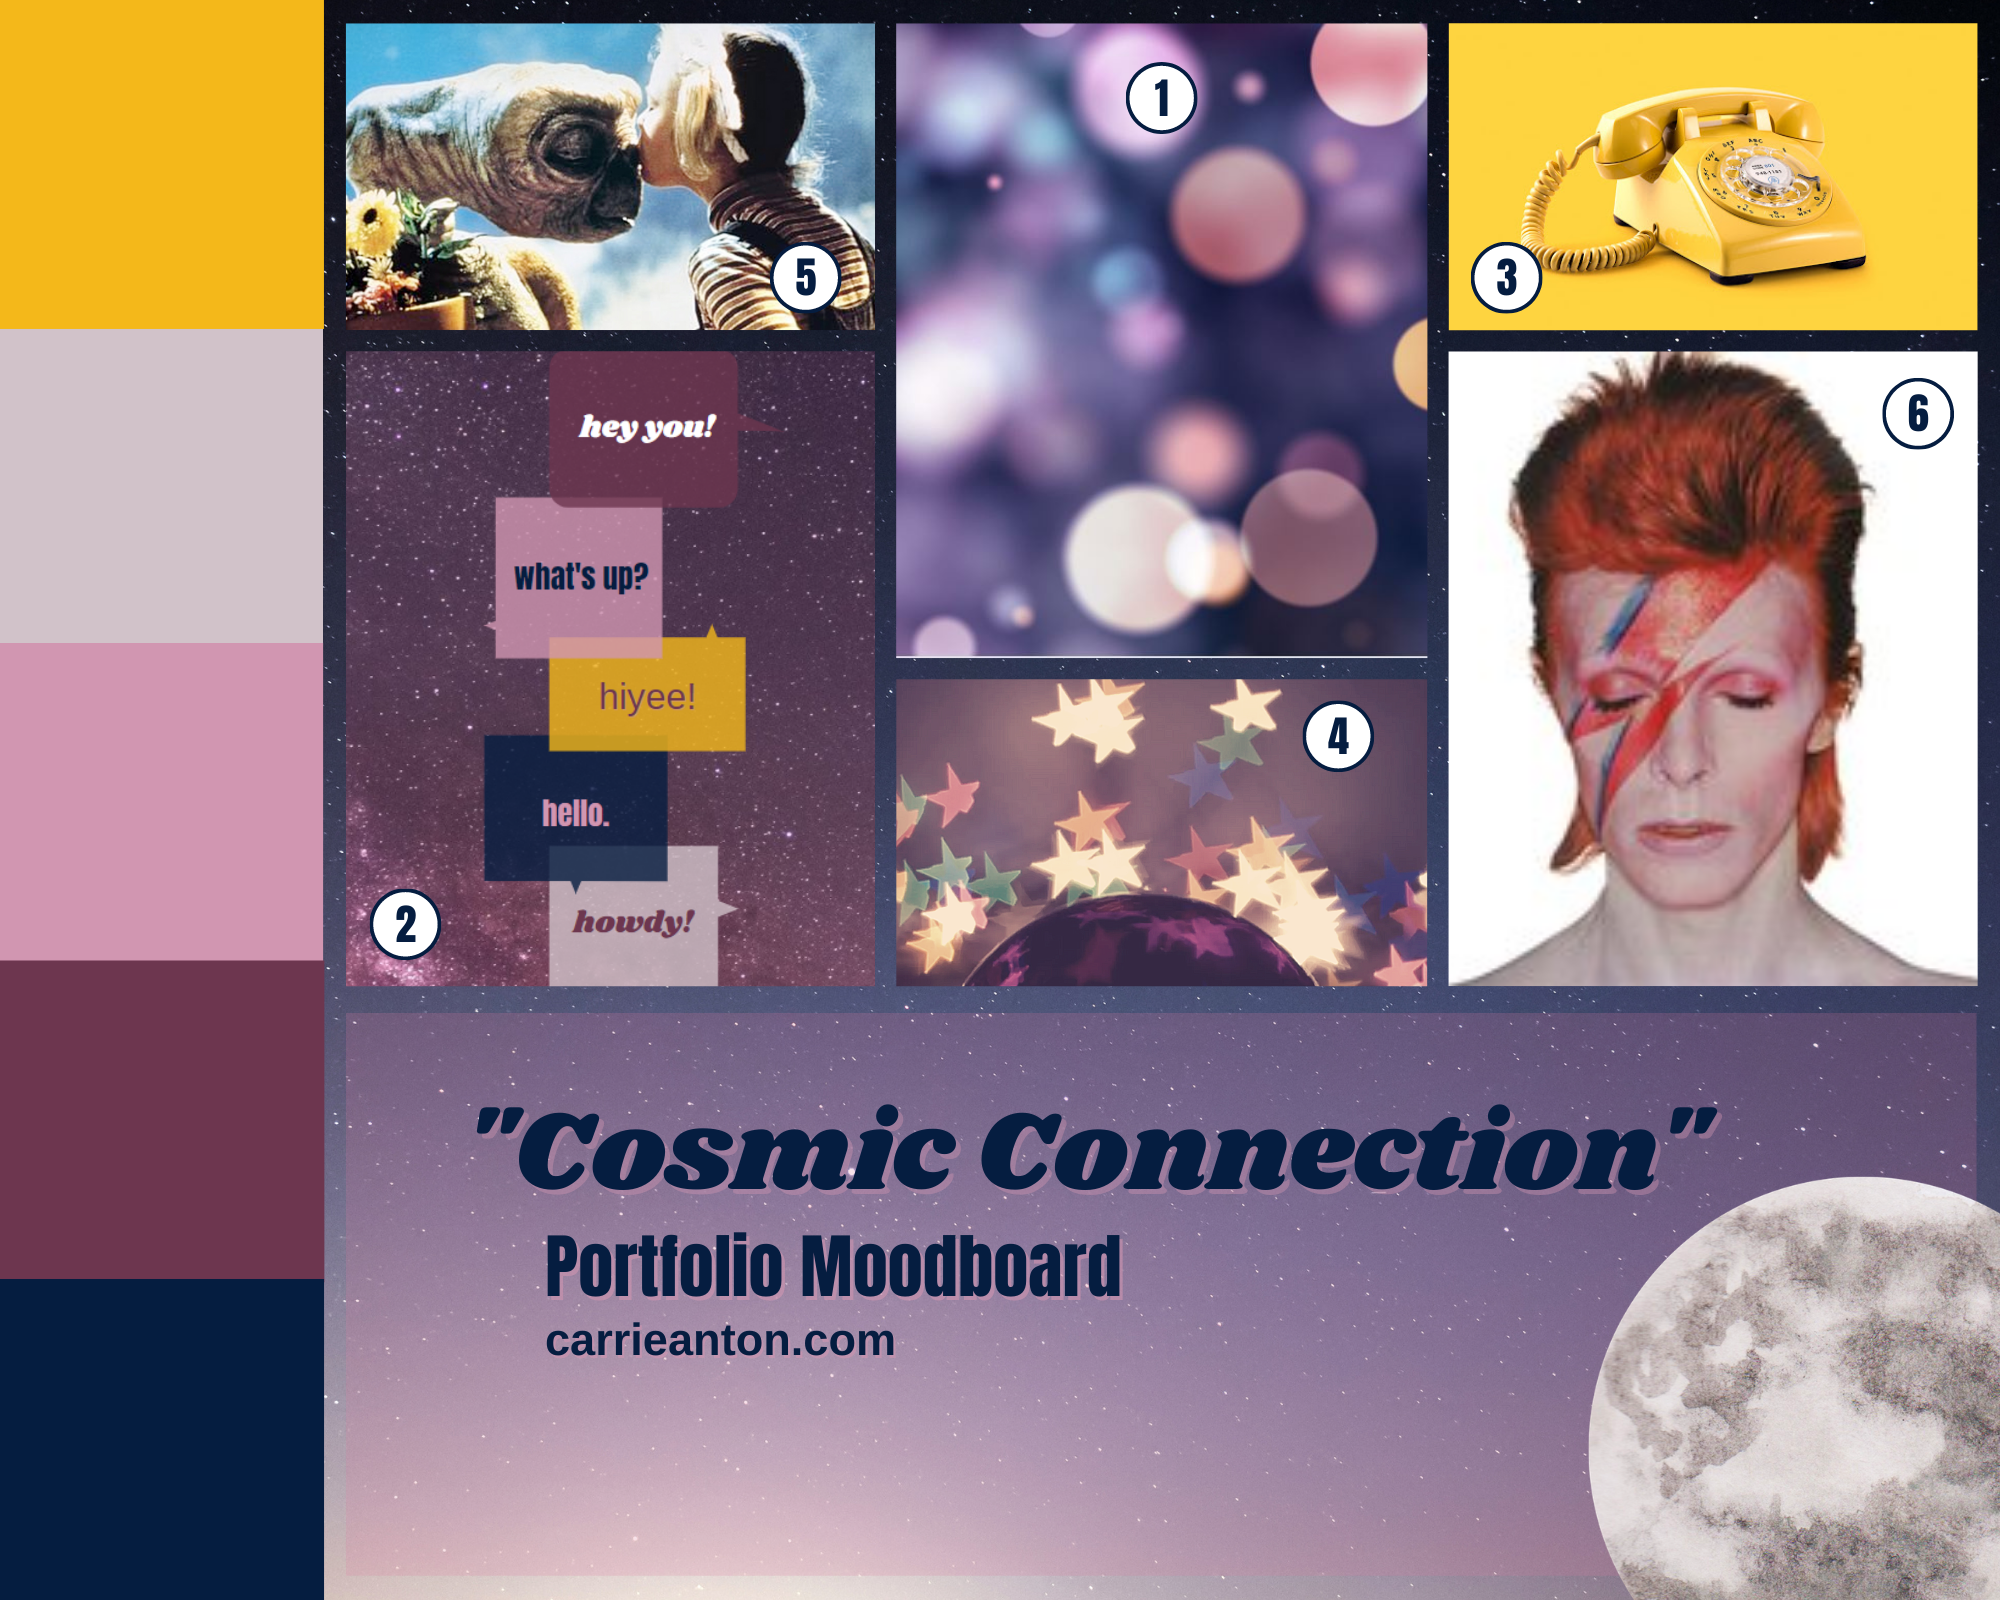 carrie anton cosmic connection portfolio moodboard design inspired by bokeh photo, speech bubbles, greetings, stars, constellations, vintage telephone, david bowie, E.T. movie with gertite and drew barrymore